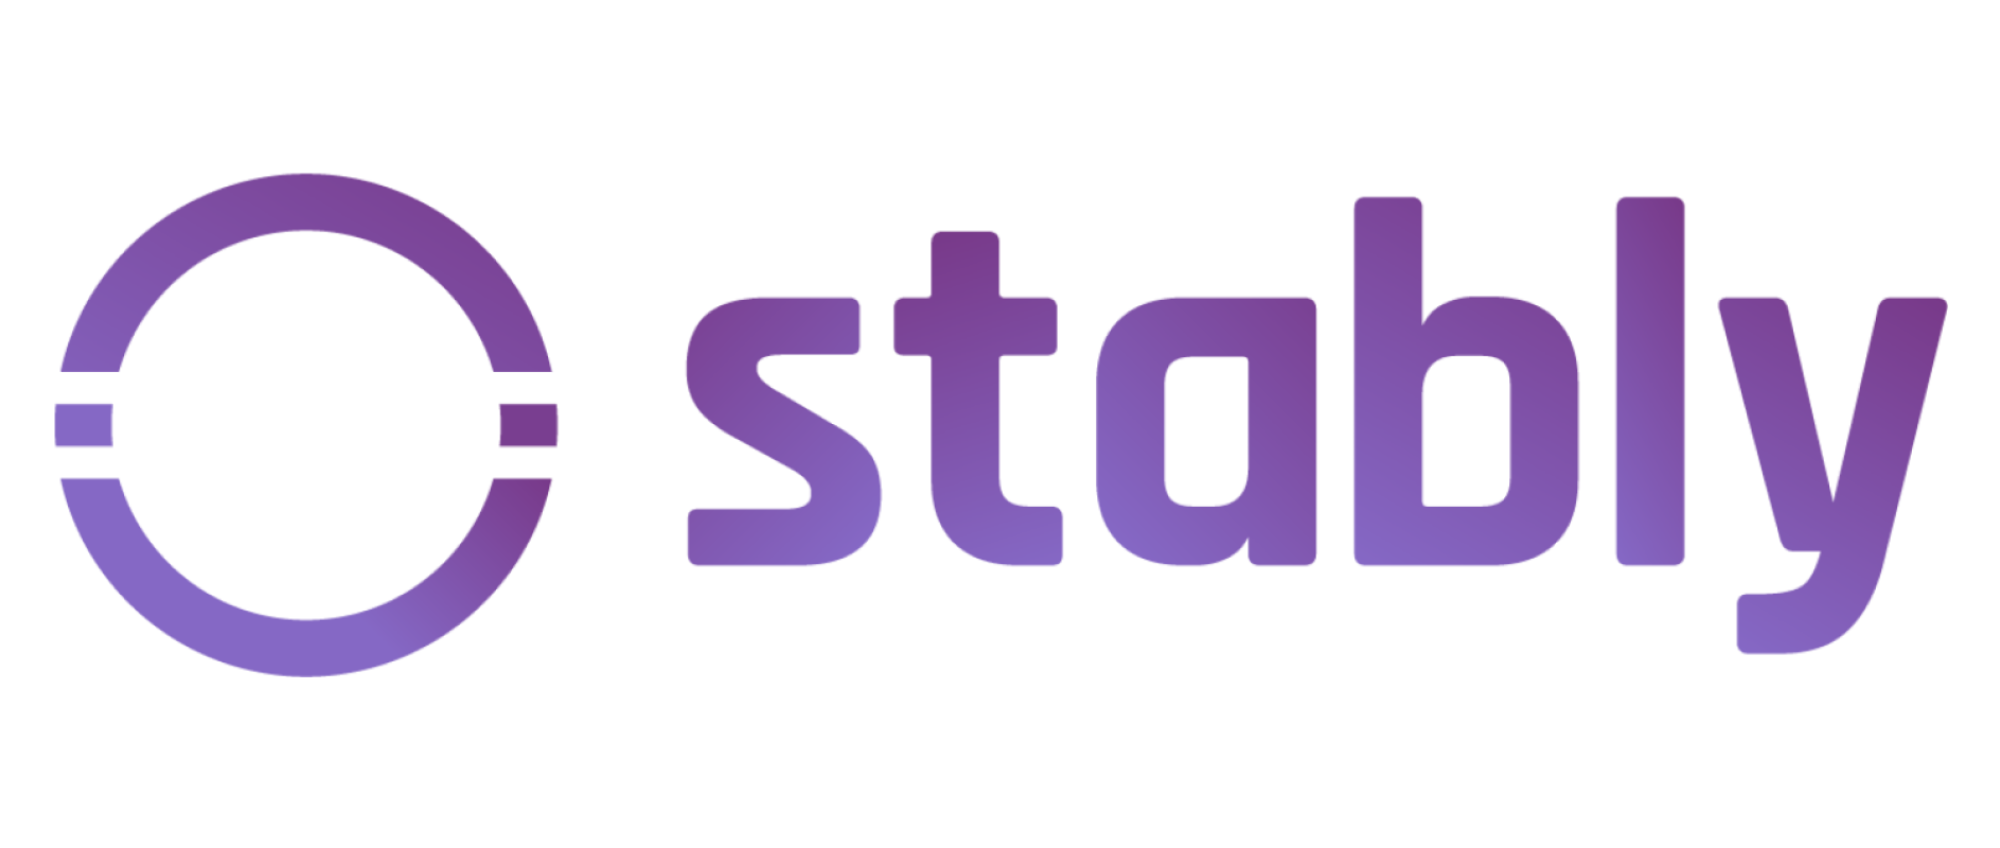 Stably USD (USDS) Help Center home page